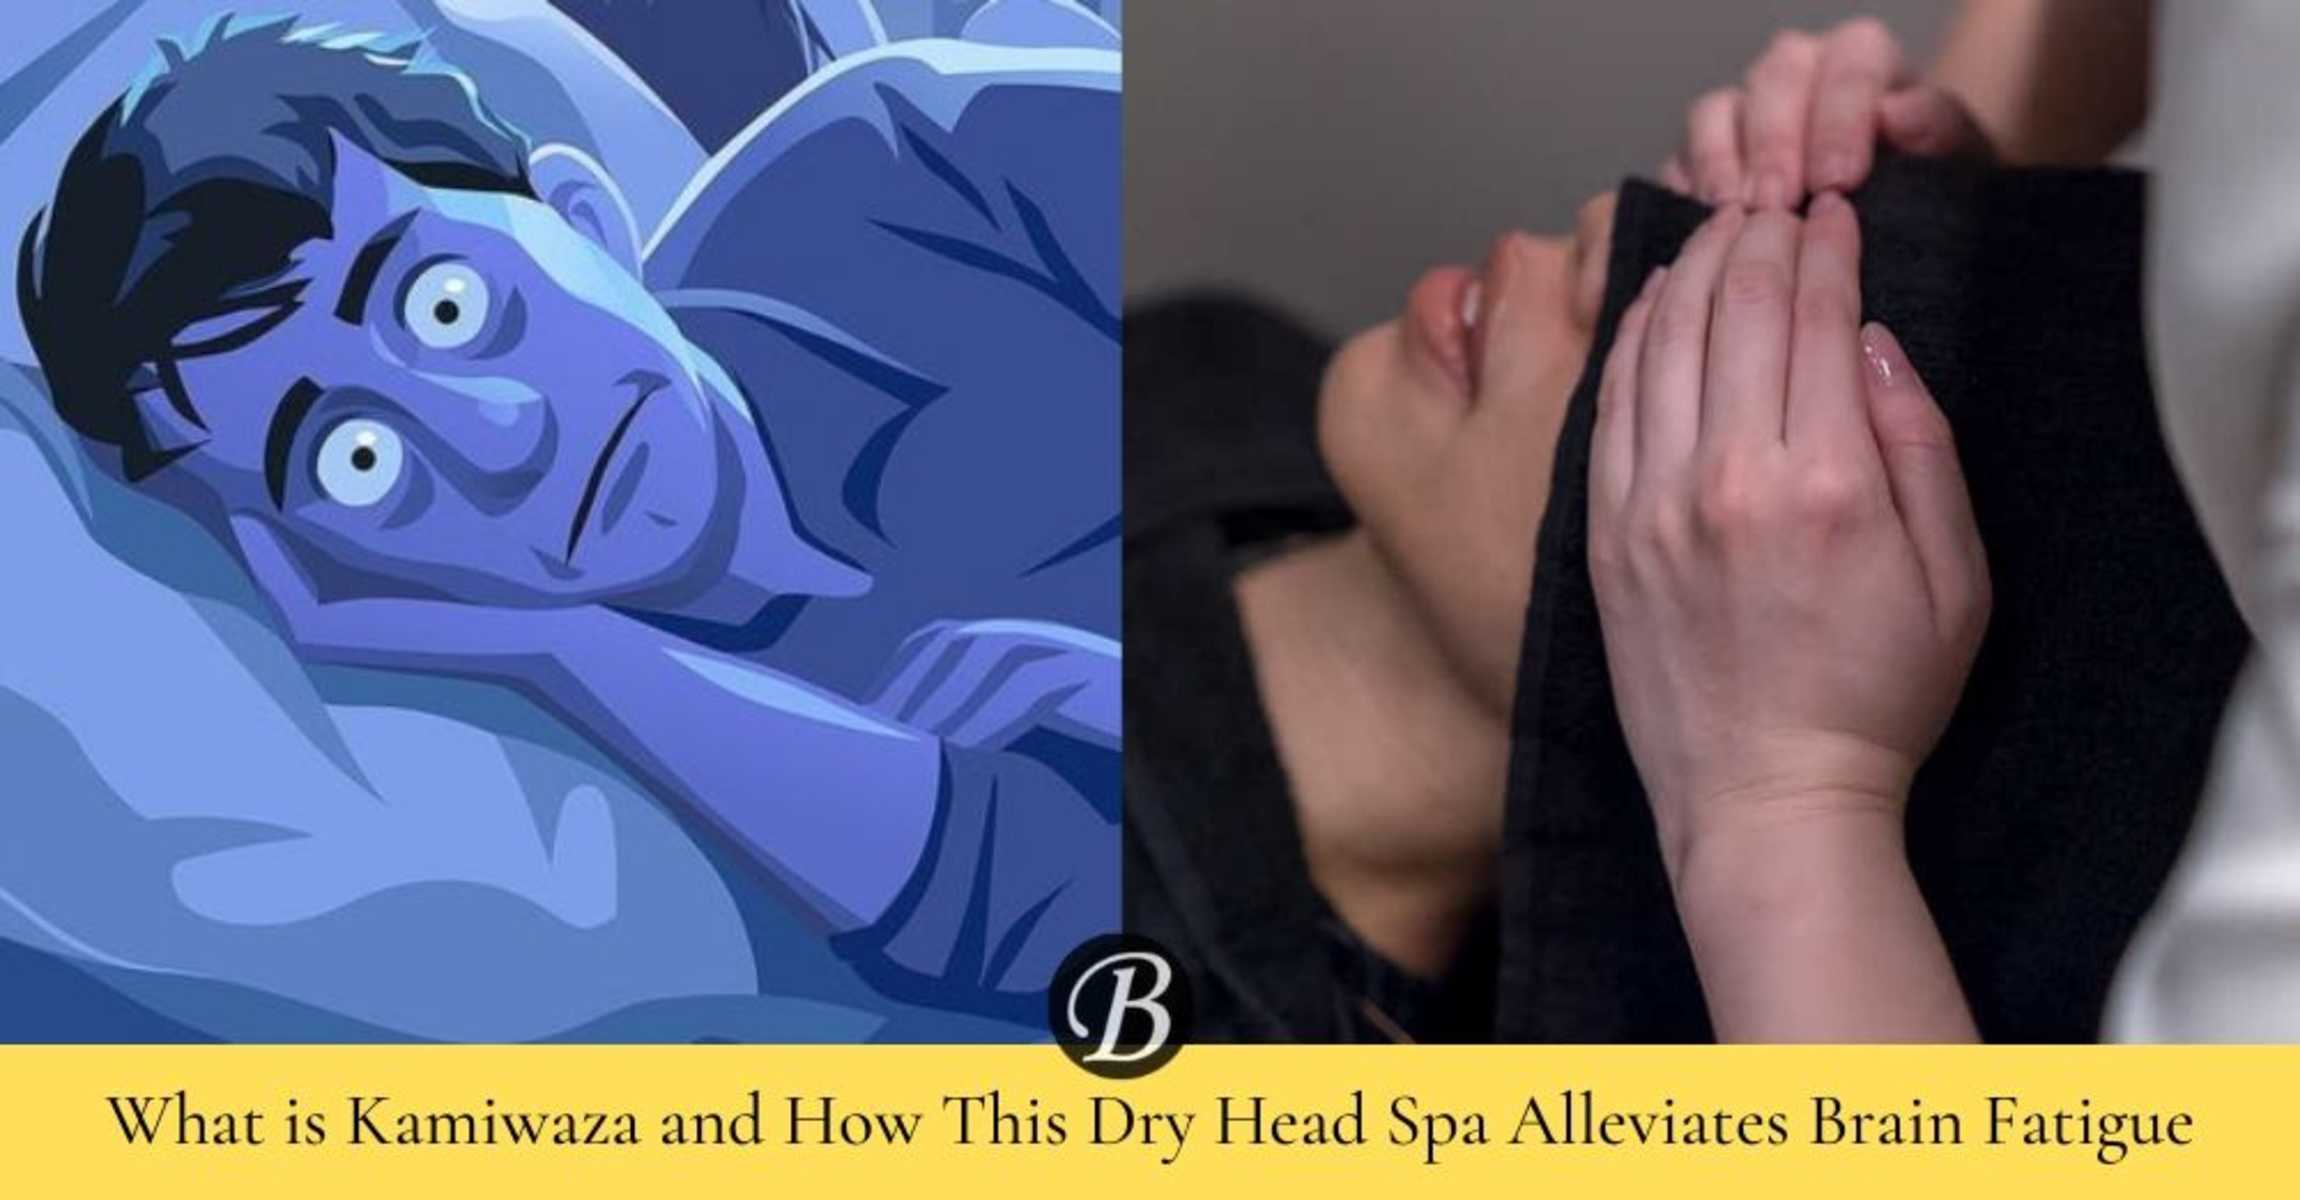 Kamiwaza and How This Dry Head Spa Alleviates Insomnia and Brain Fatigue